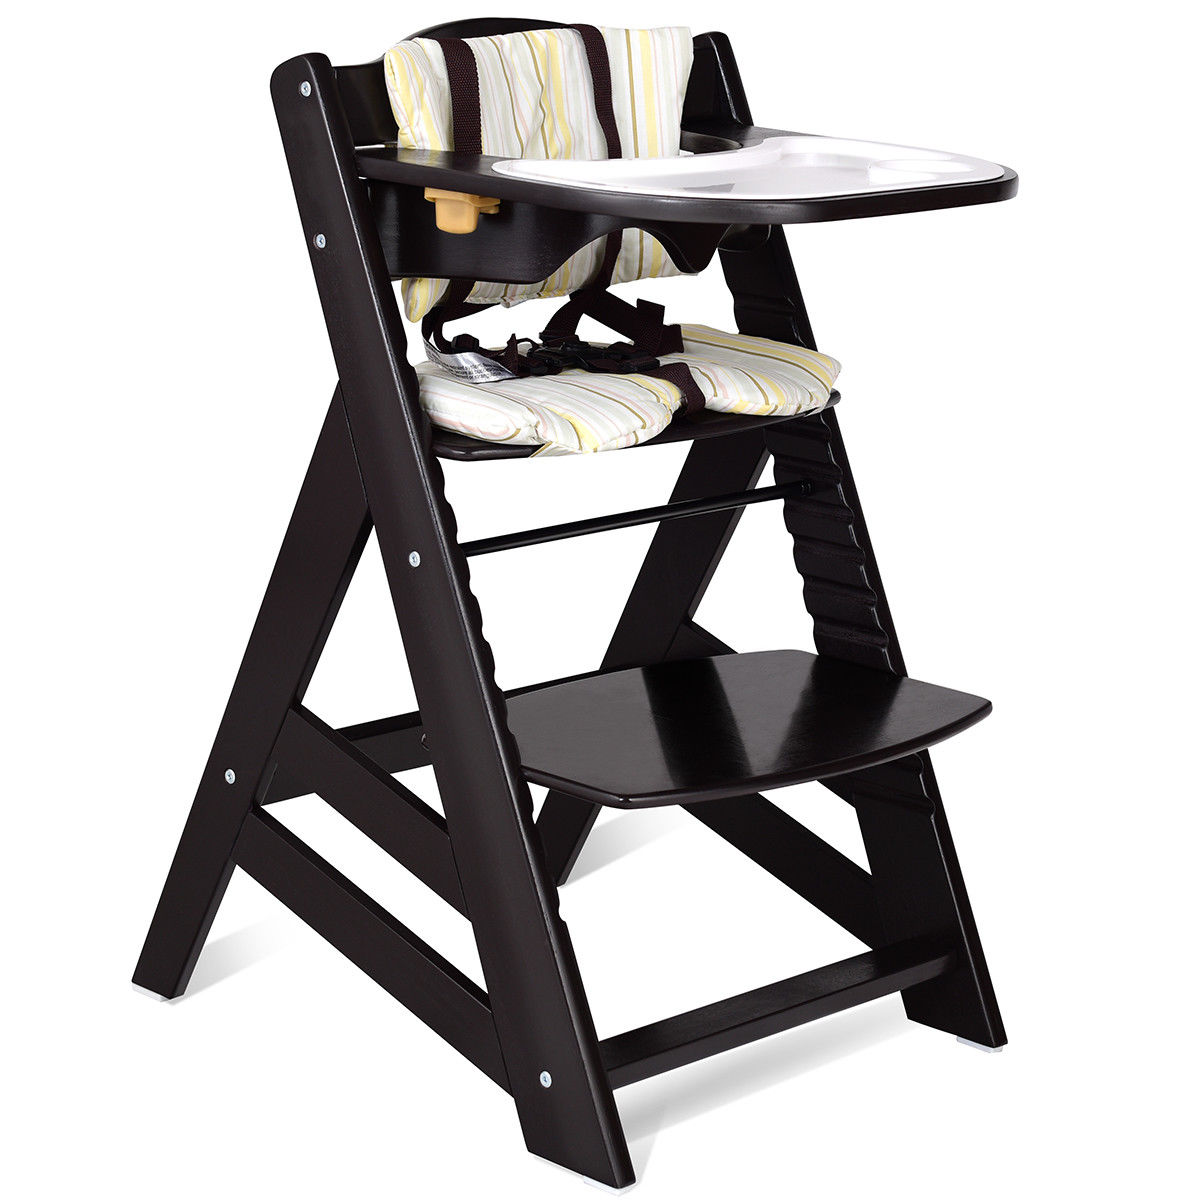 Costway Baby Toddler Wooden Highchair Dining Chair Adjustable Height